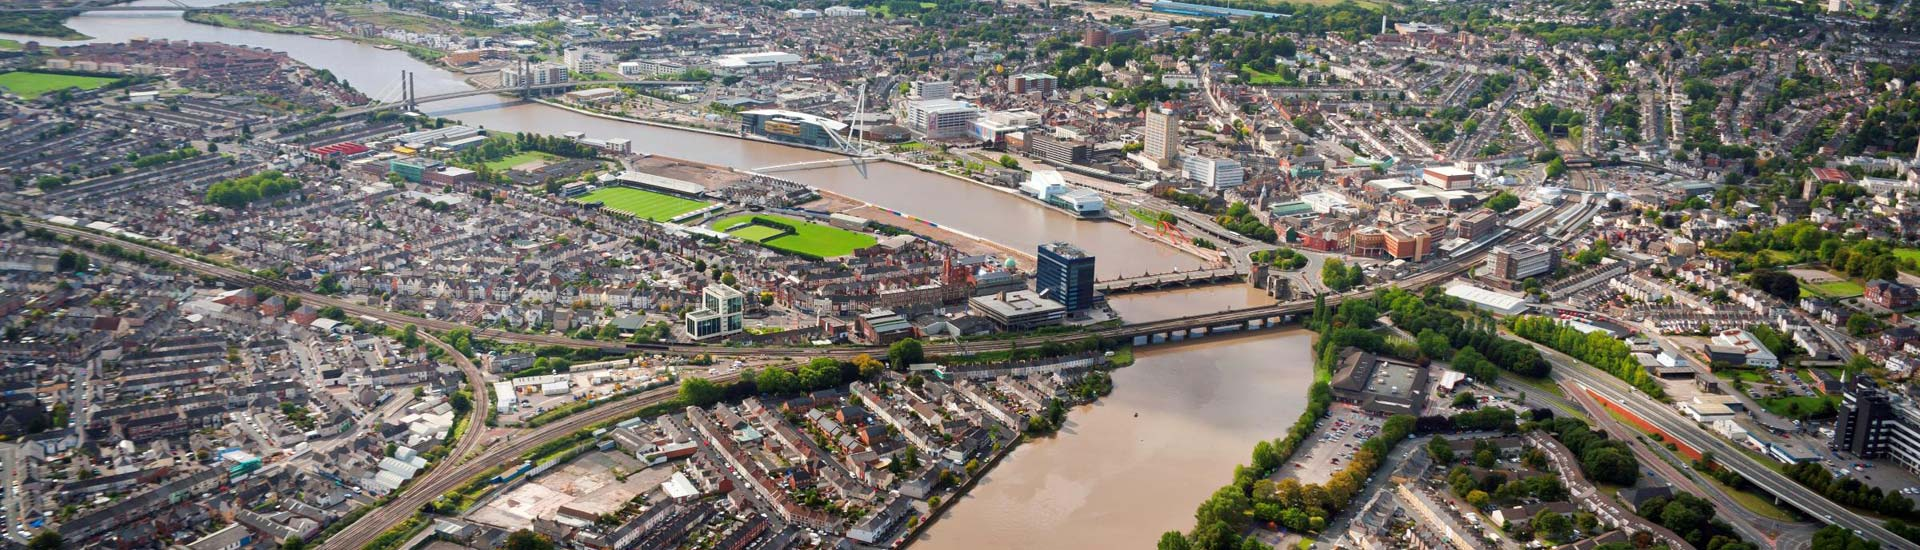 Irish Rugby Tours to Wales - Newport